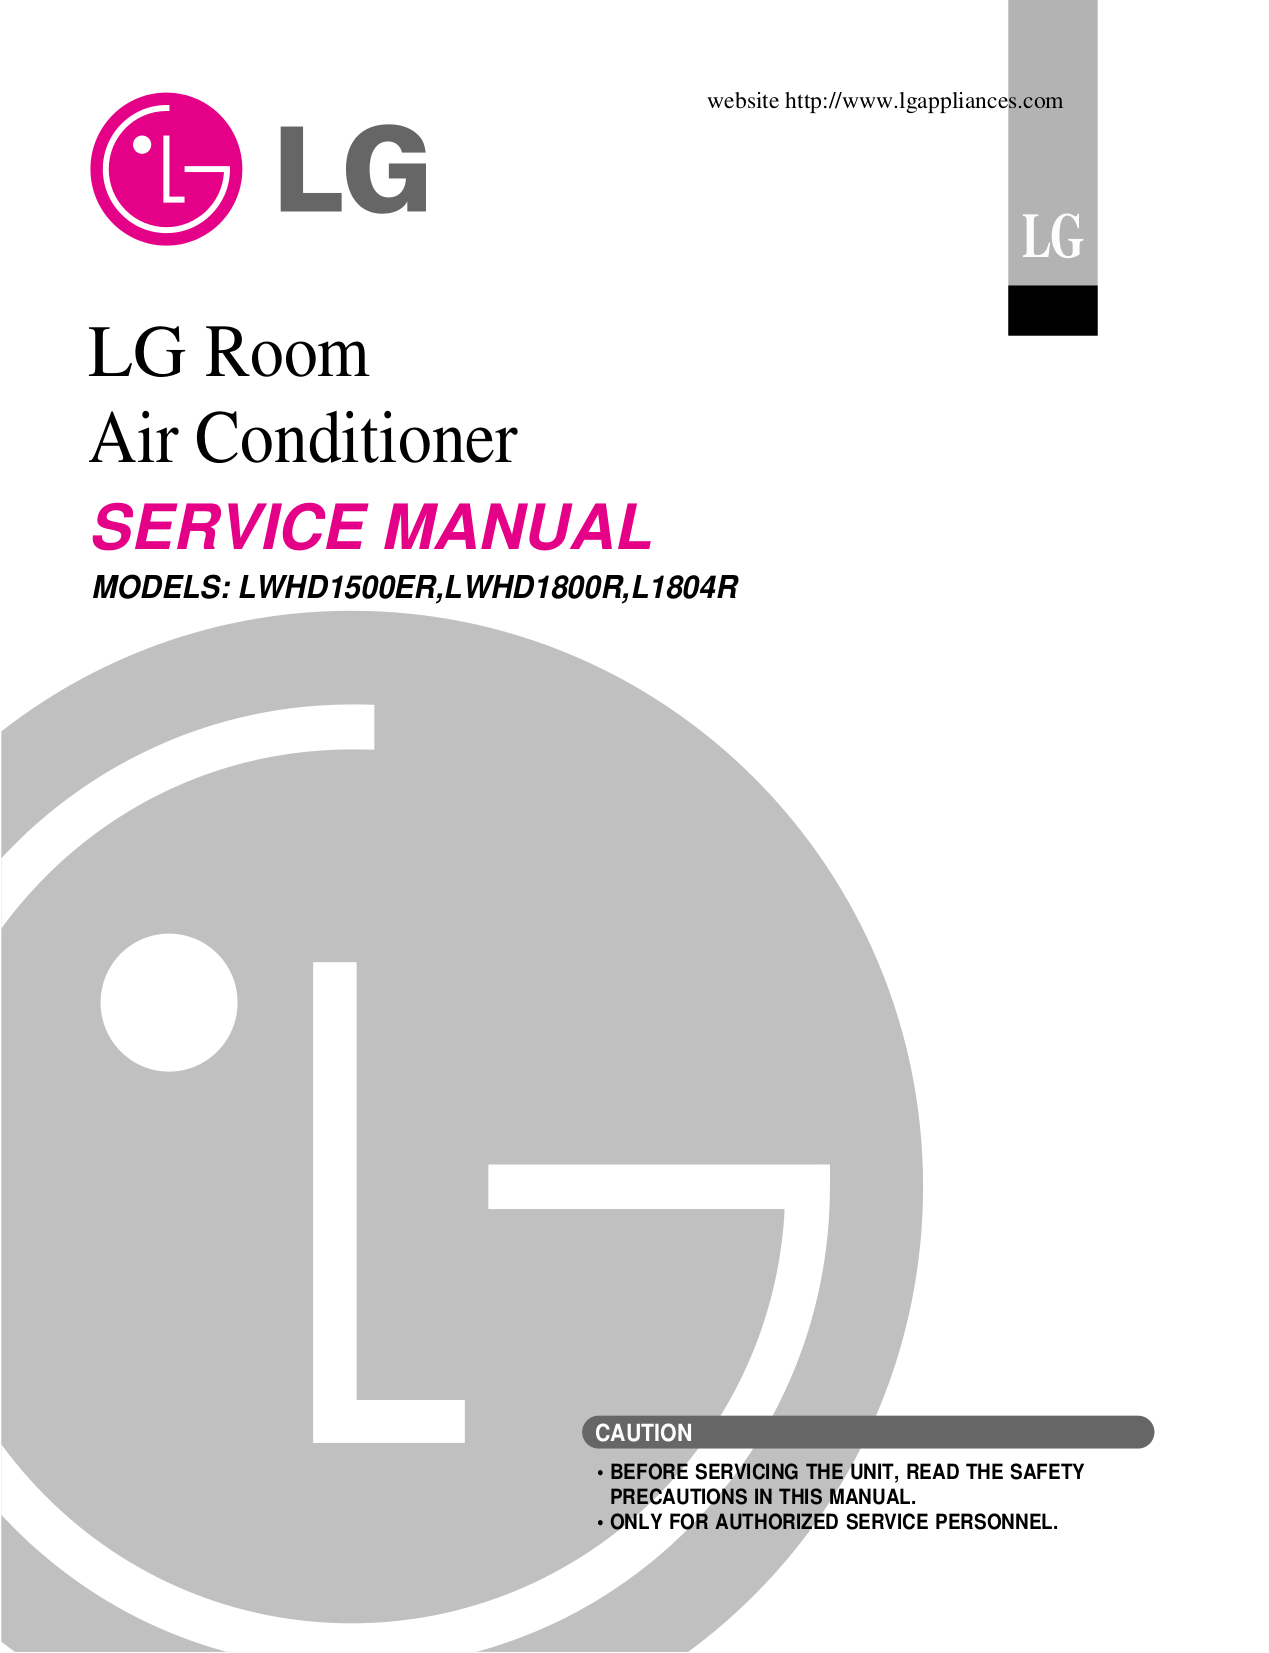 Lg window air conditioner installation manual best air 2017 lg air conditioners window ac filter cleaning you fandeluxe Gallery